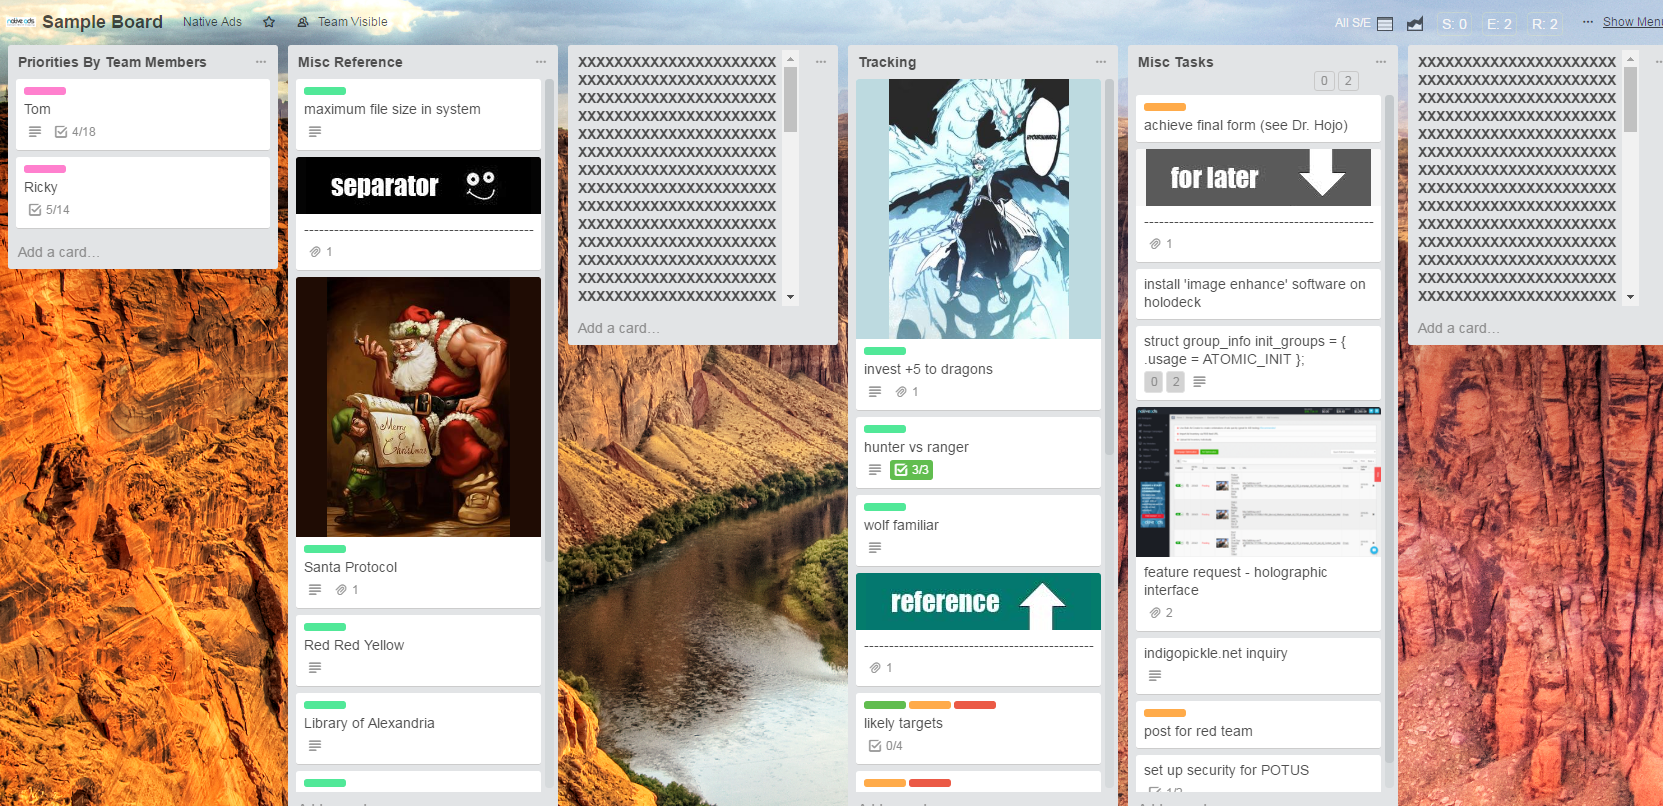 How To Use Trello Sample Board